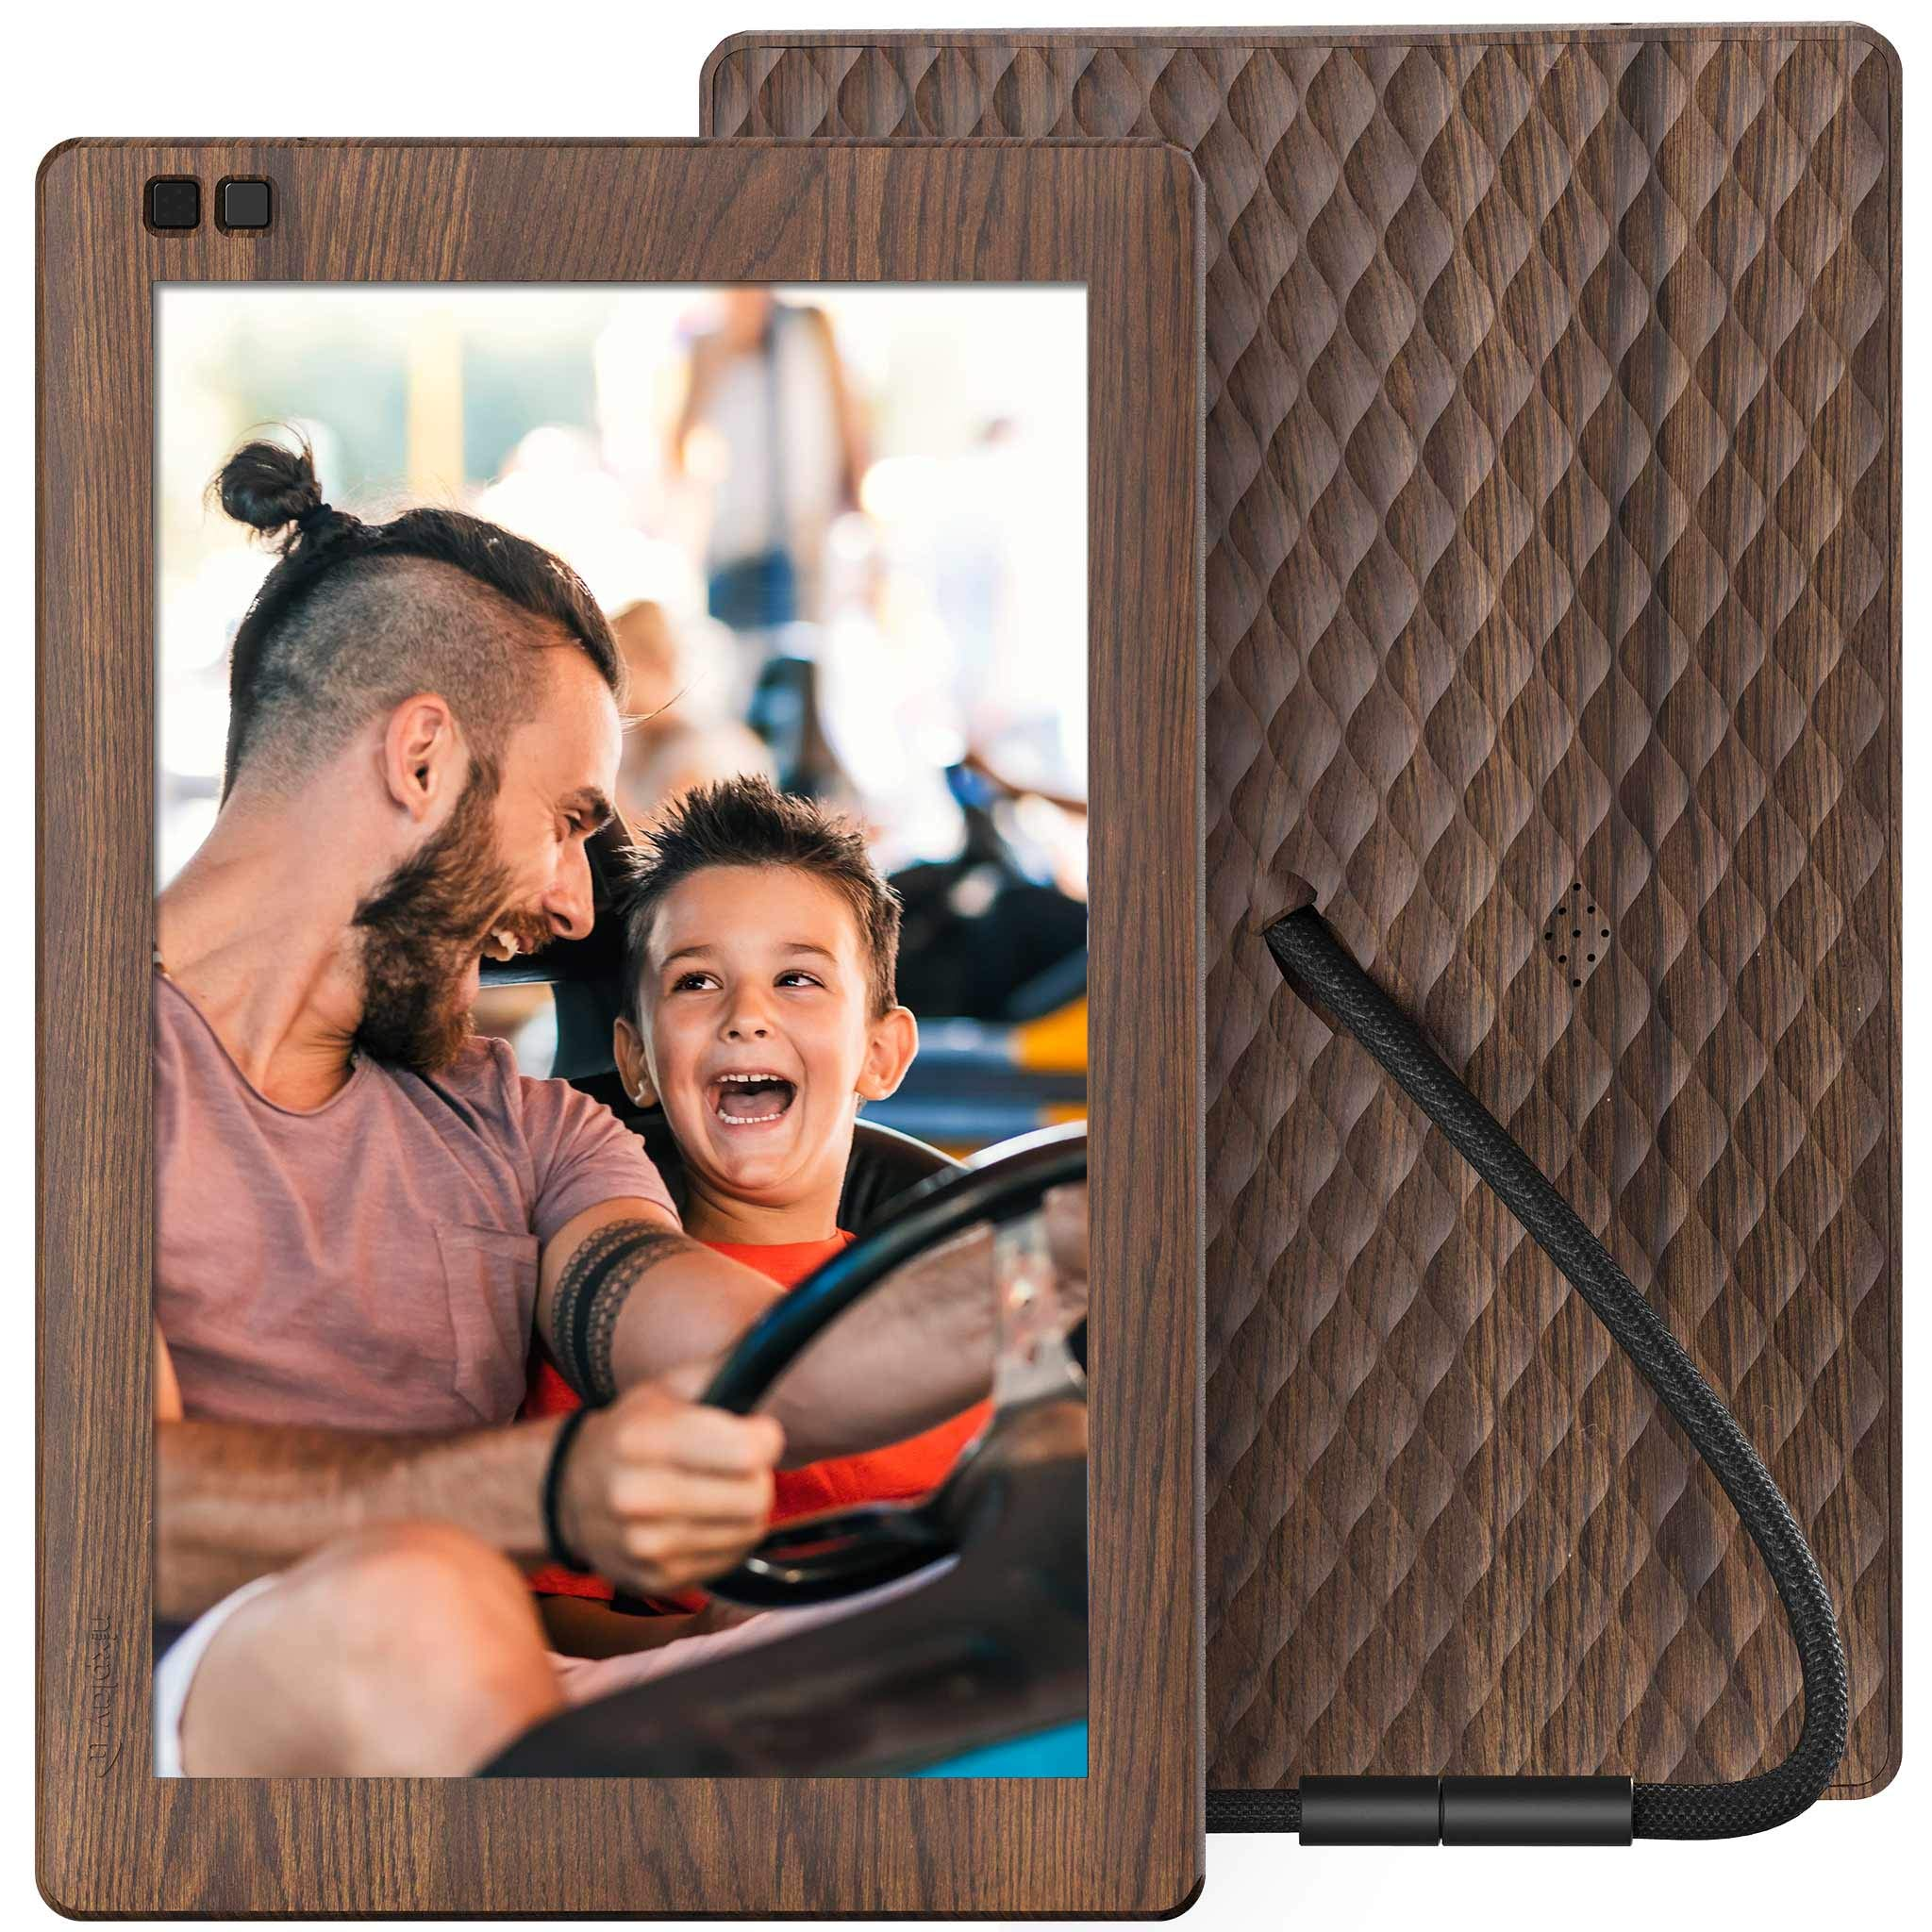 Nixplay Seed 10.1 Inch Widescreen Digital WiFi Photo Frame W10B Wood Effect - Digital Picture Frame with IPS Display and 10GB Online Storage, Display and Share Photos via Nixplay Mobile App by nixplay